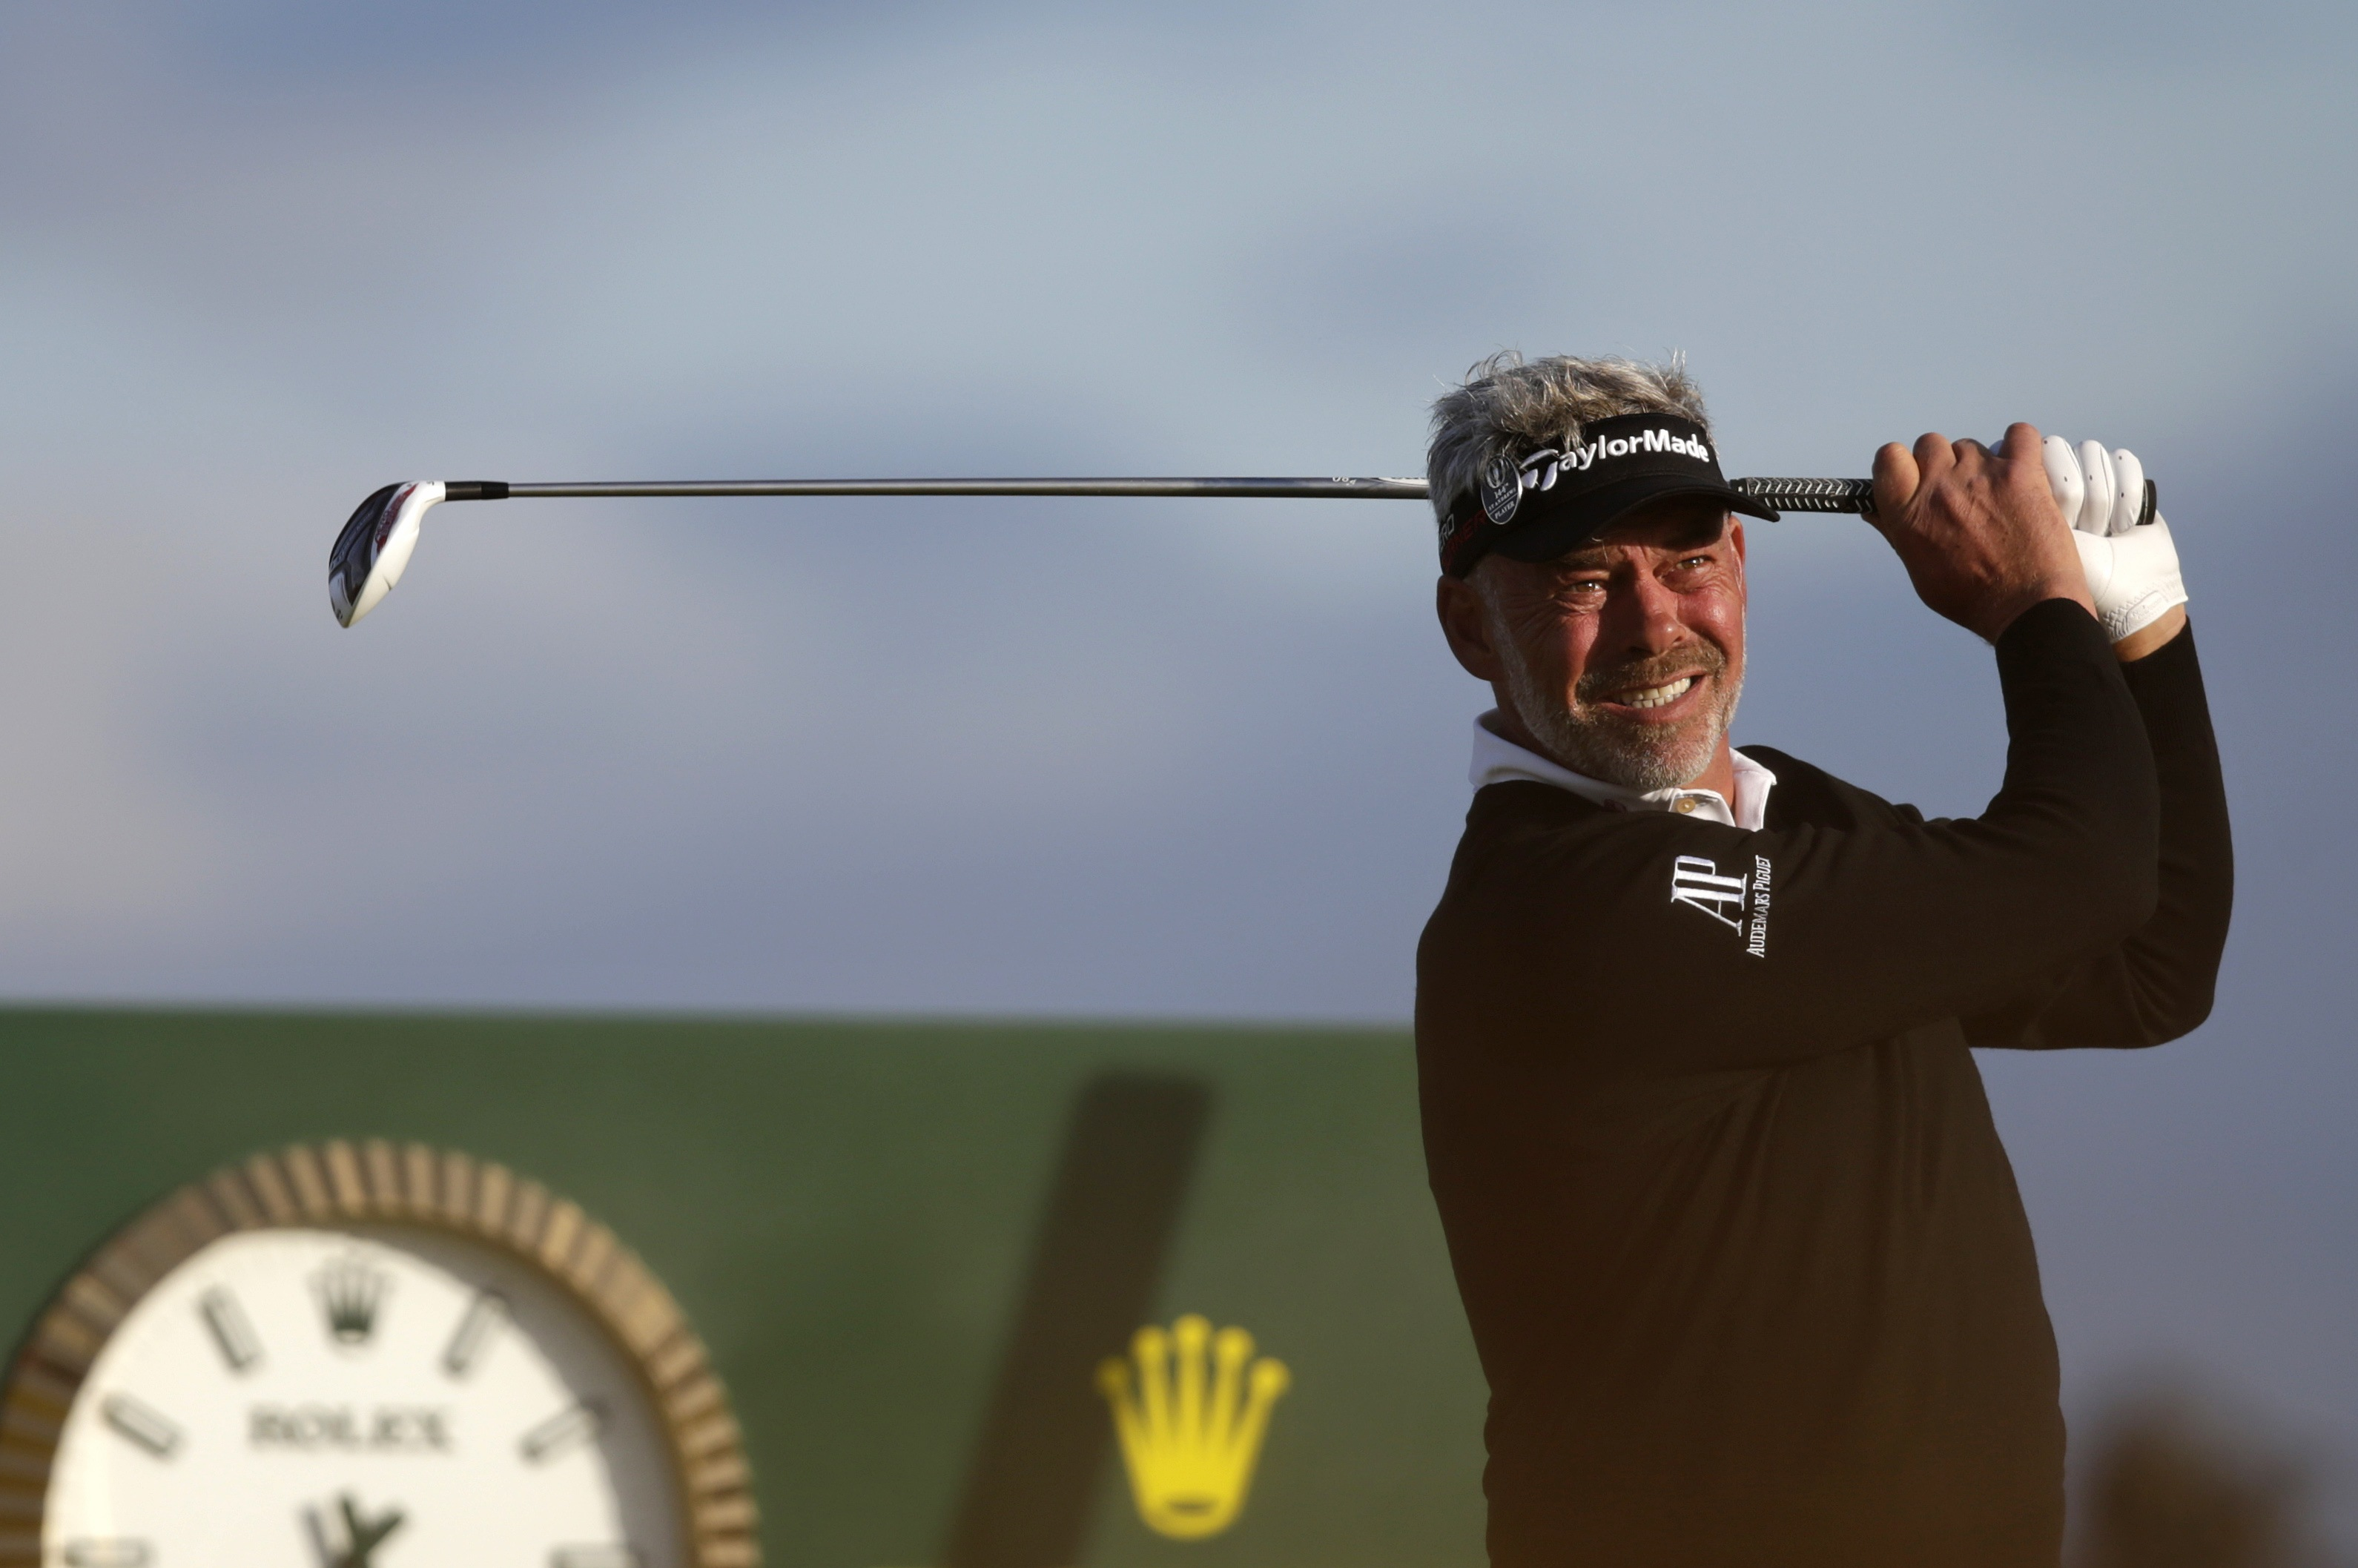 Northern Irelands Darren Clarke drives a ball from the seventh tee during the second round of the British Open Golf Championship at the Old Course, St. Andrews, Scotland, Friday, July 17, 2015. (AP Photo/Alastair Grant)